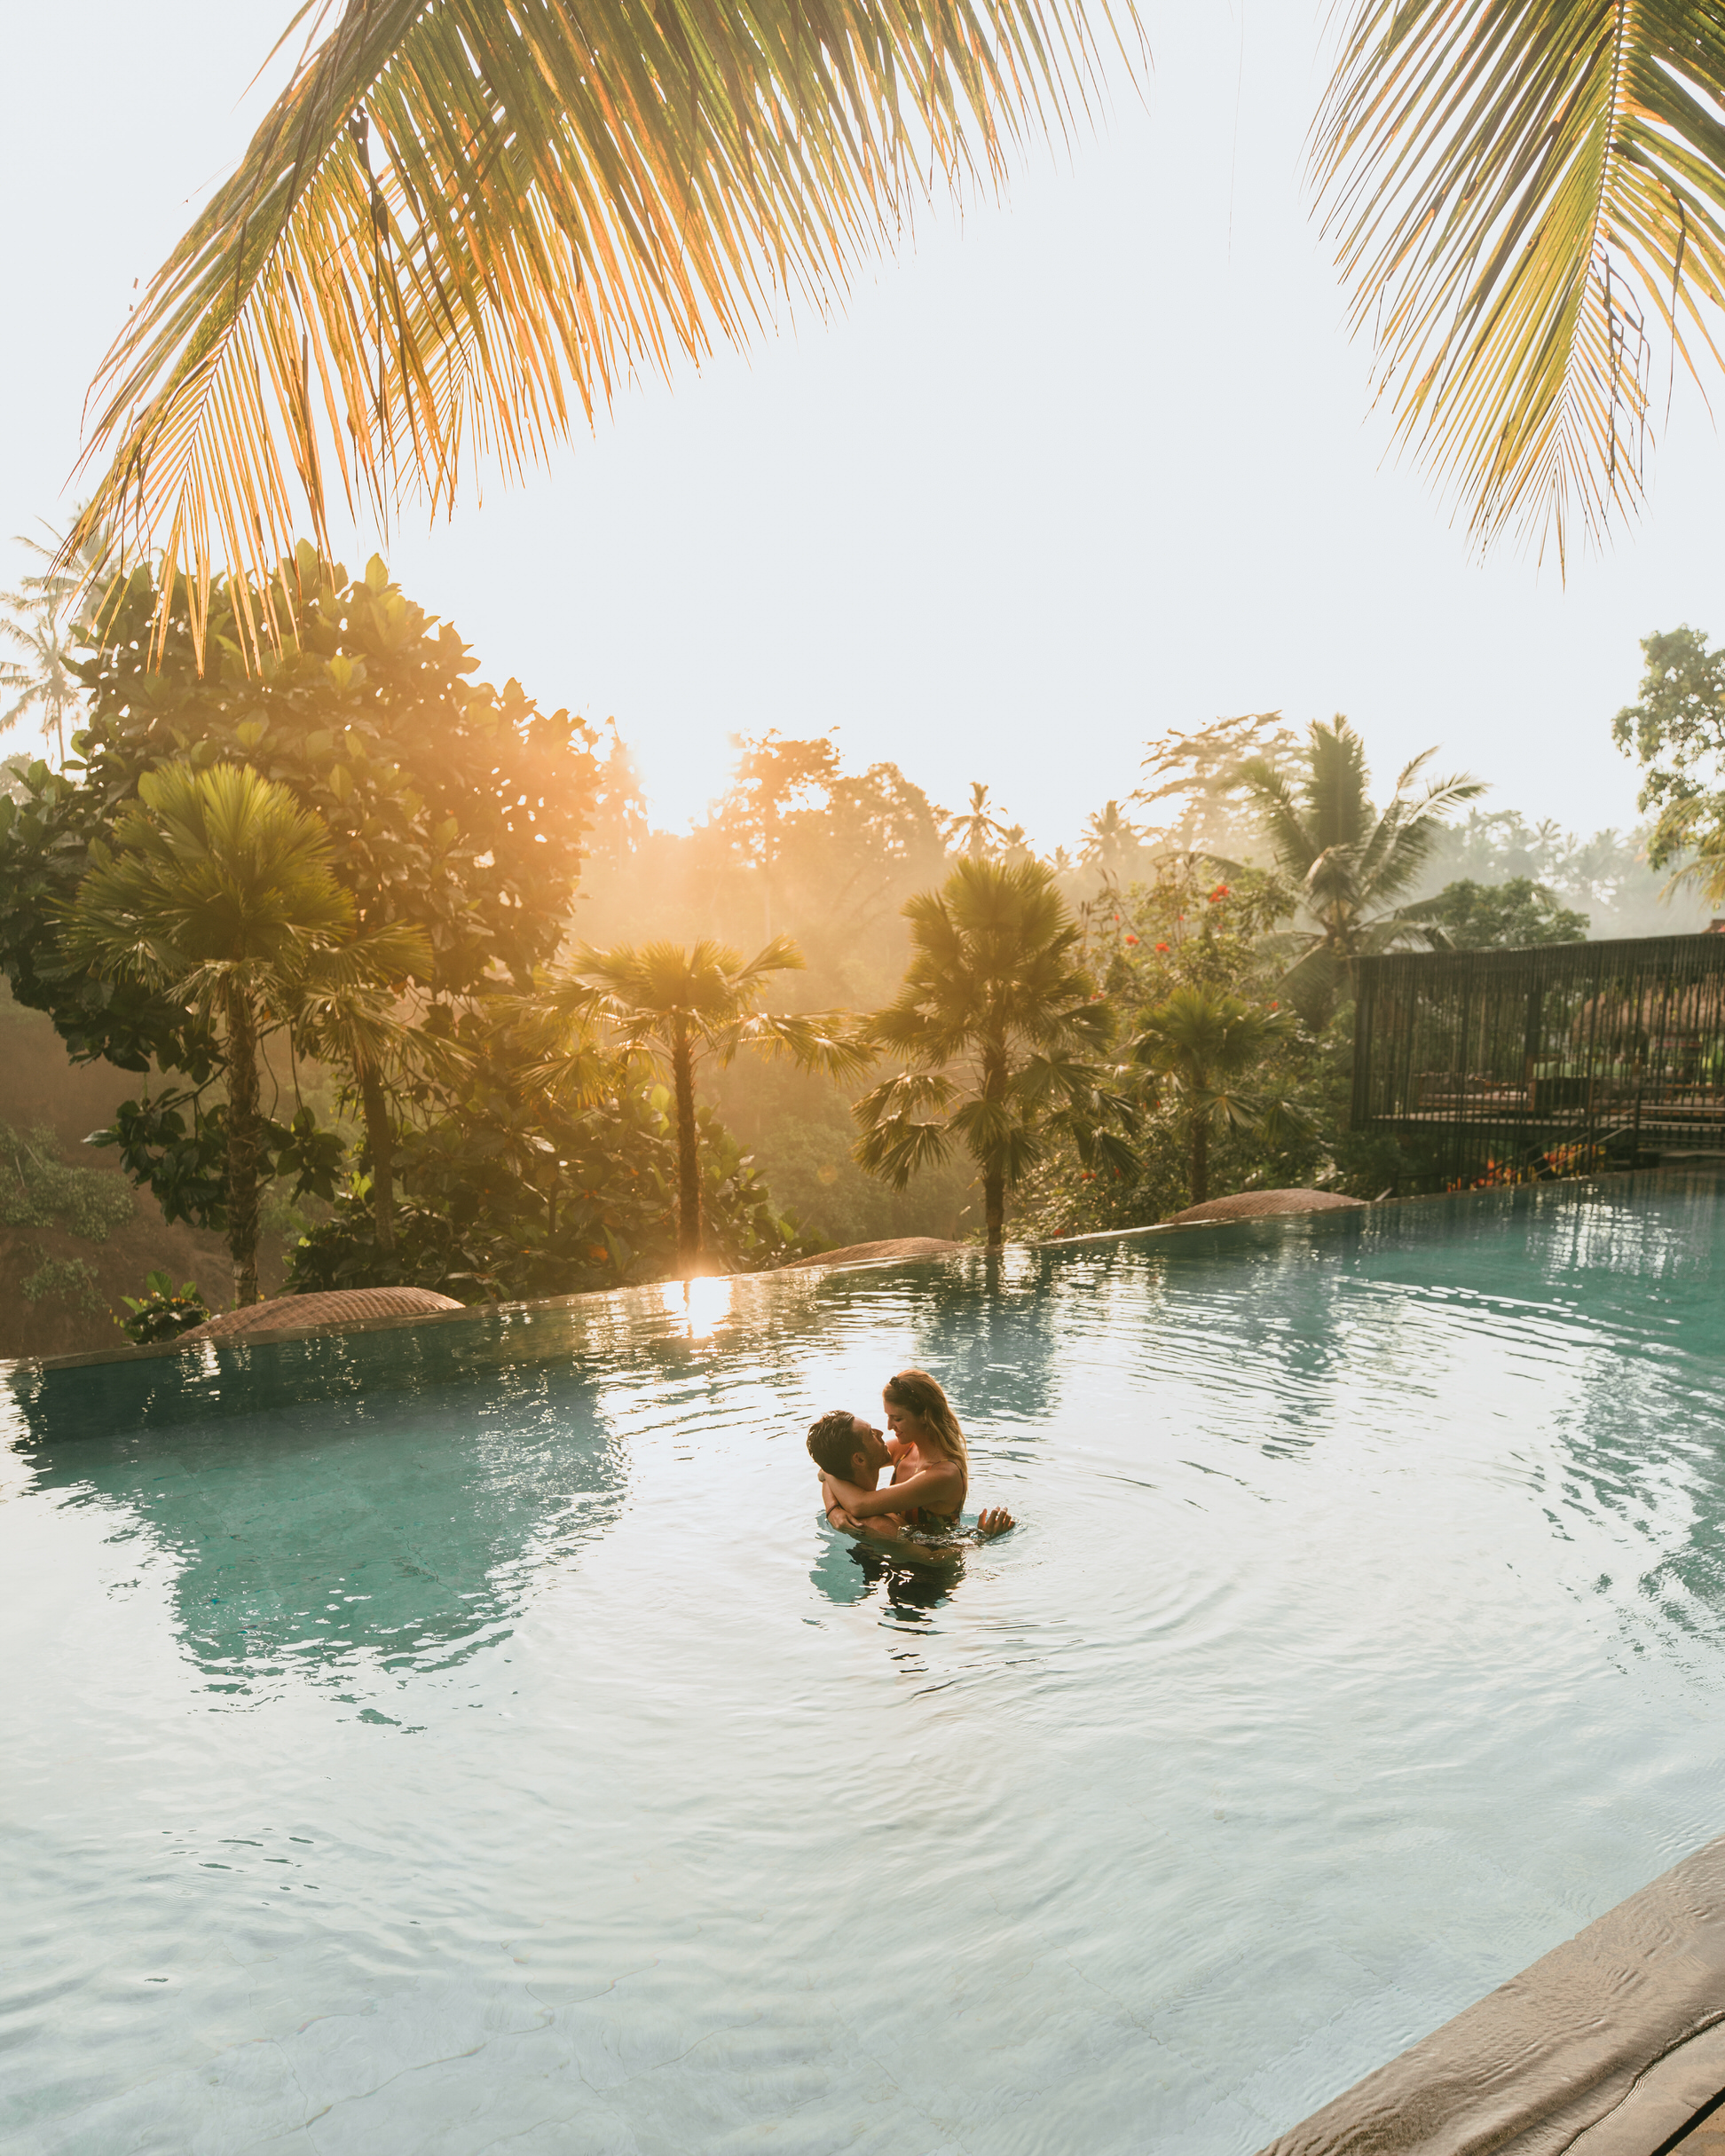 where to stay in bali indonesia travel guide chapung sebali